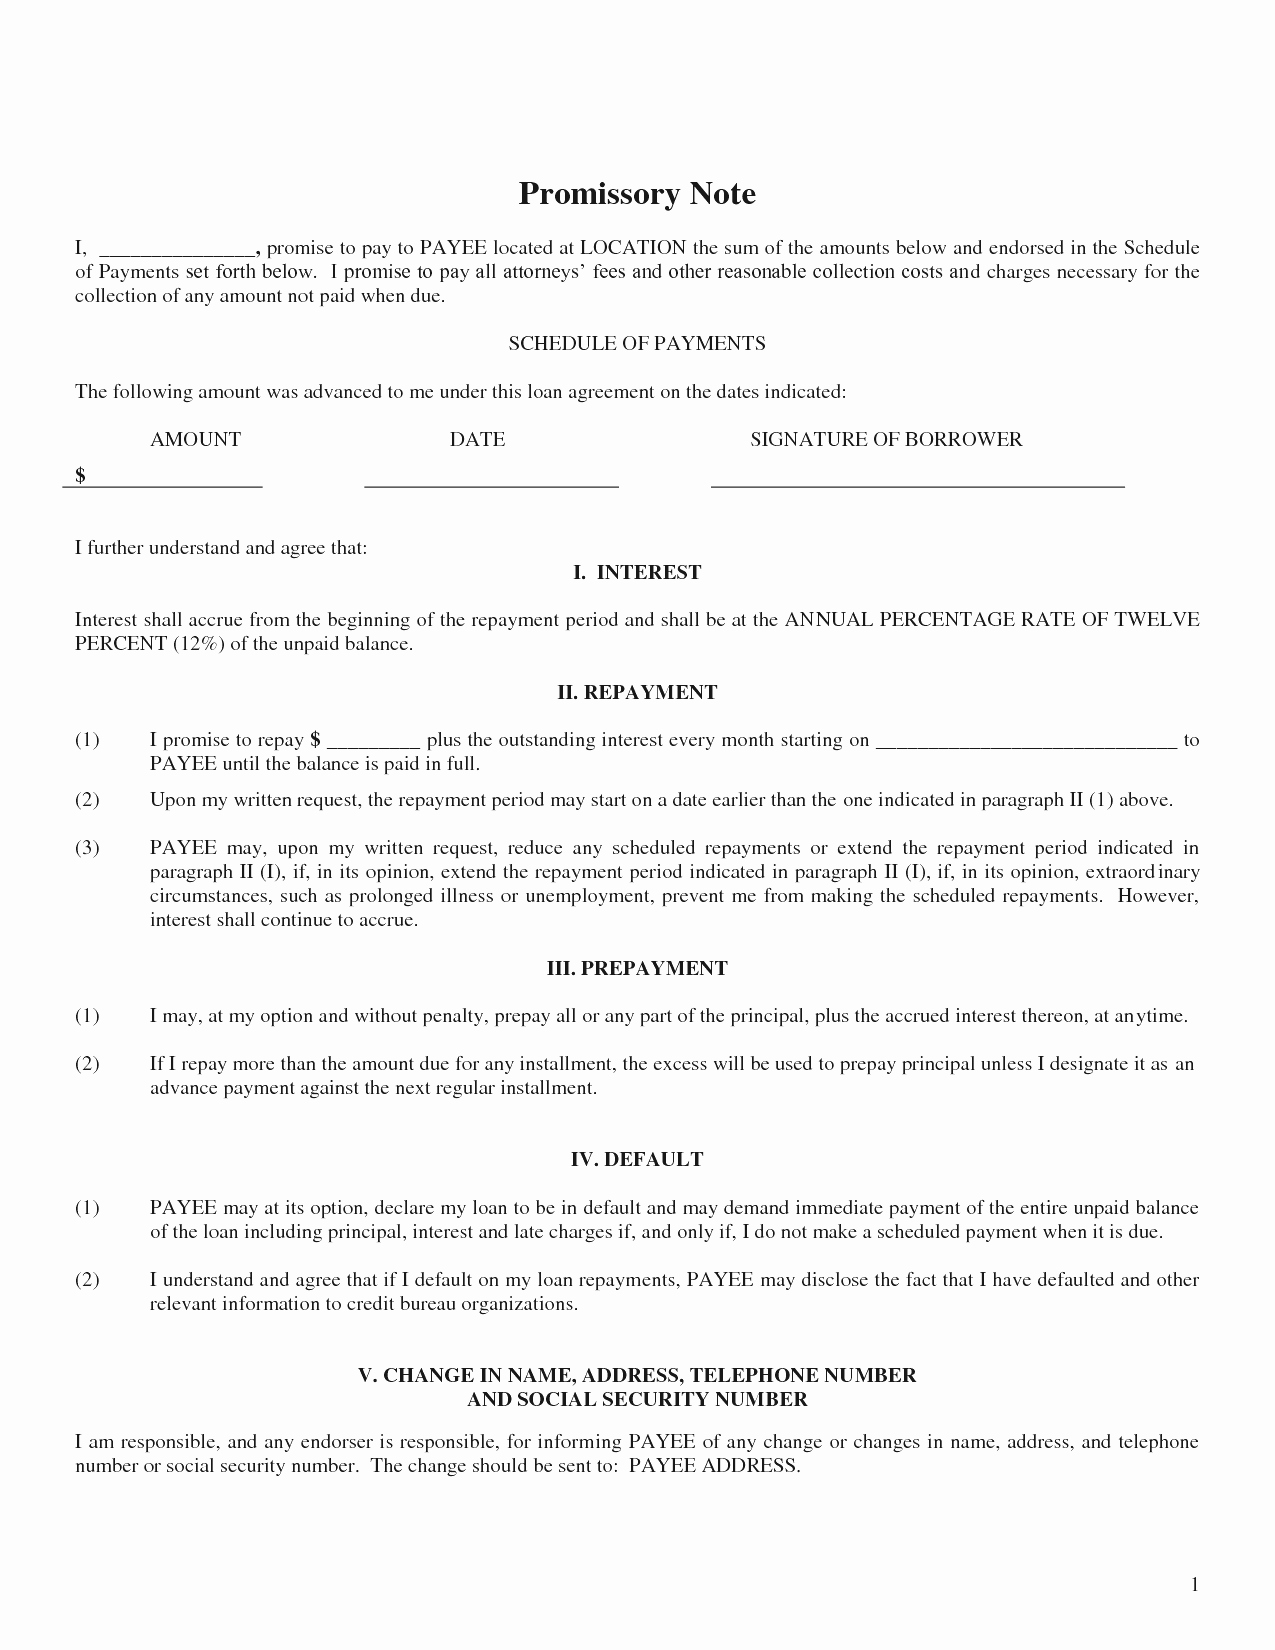 Promissory Note Template Free Unique Blank Promissory Note Example Mughals